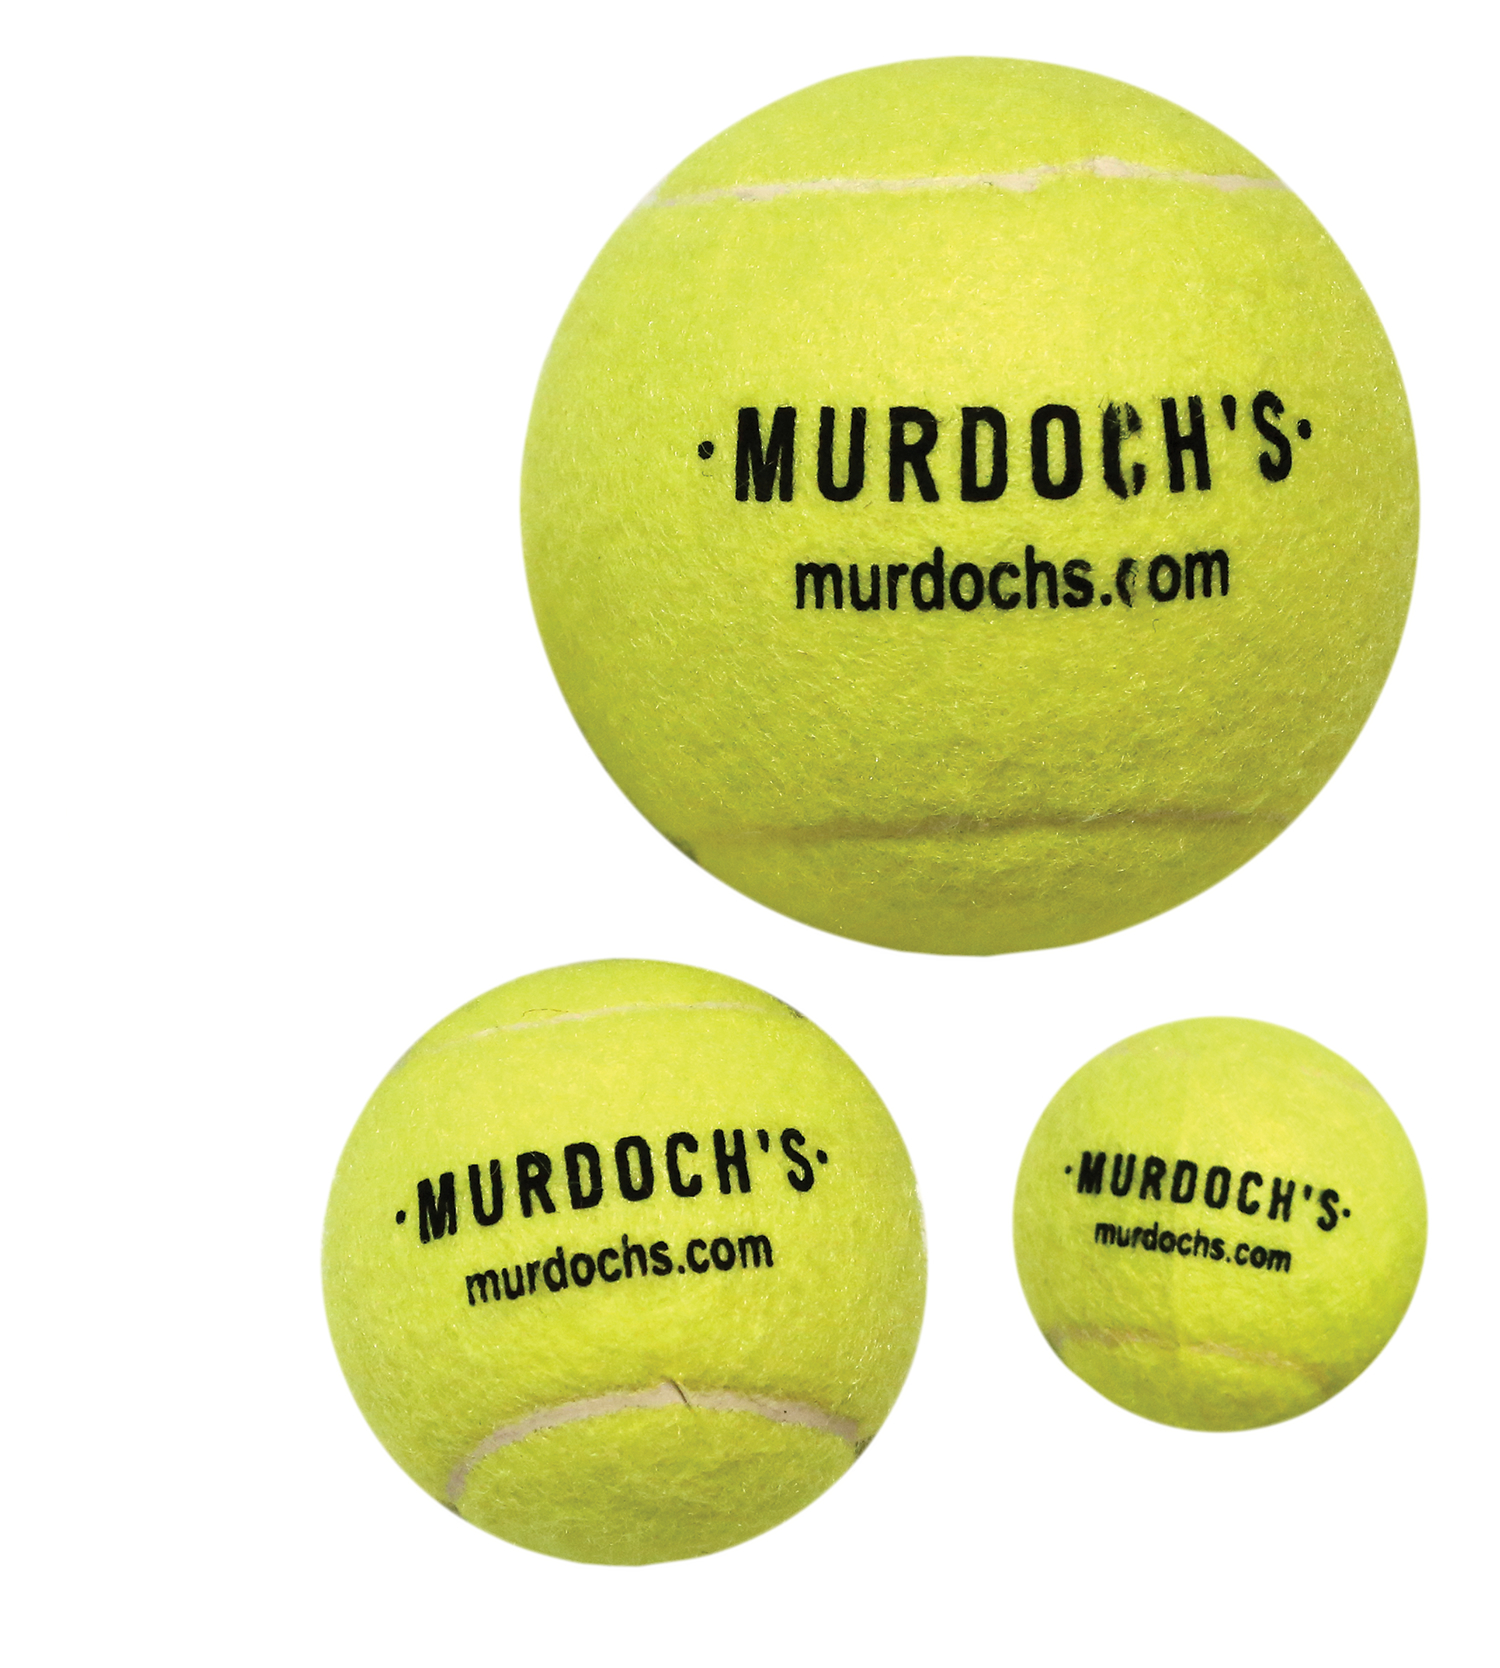 Three sizes of tennis balls: mini, standard, and extra large